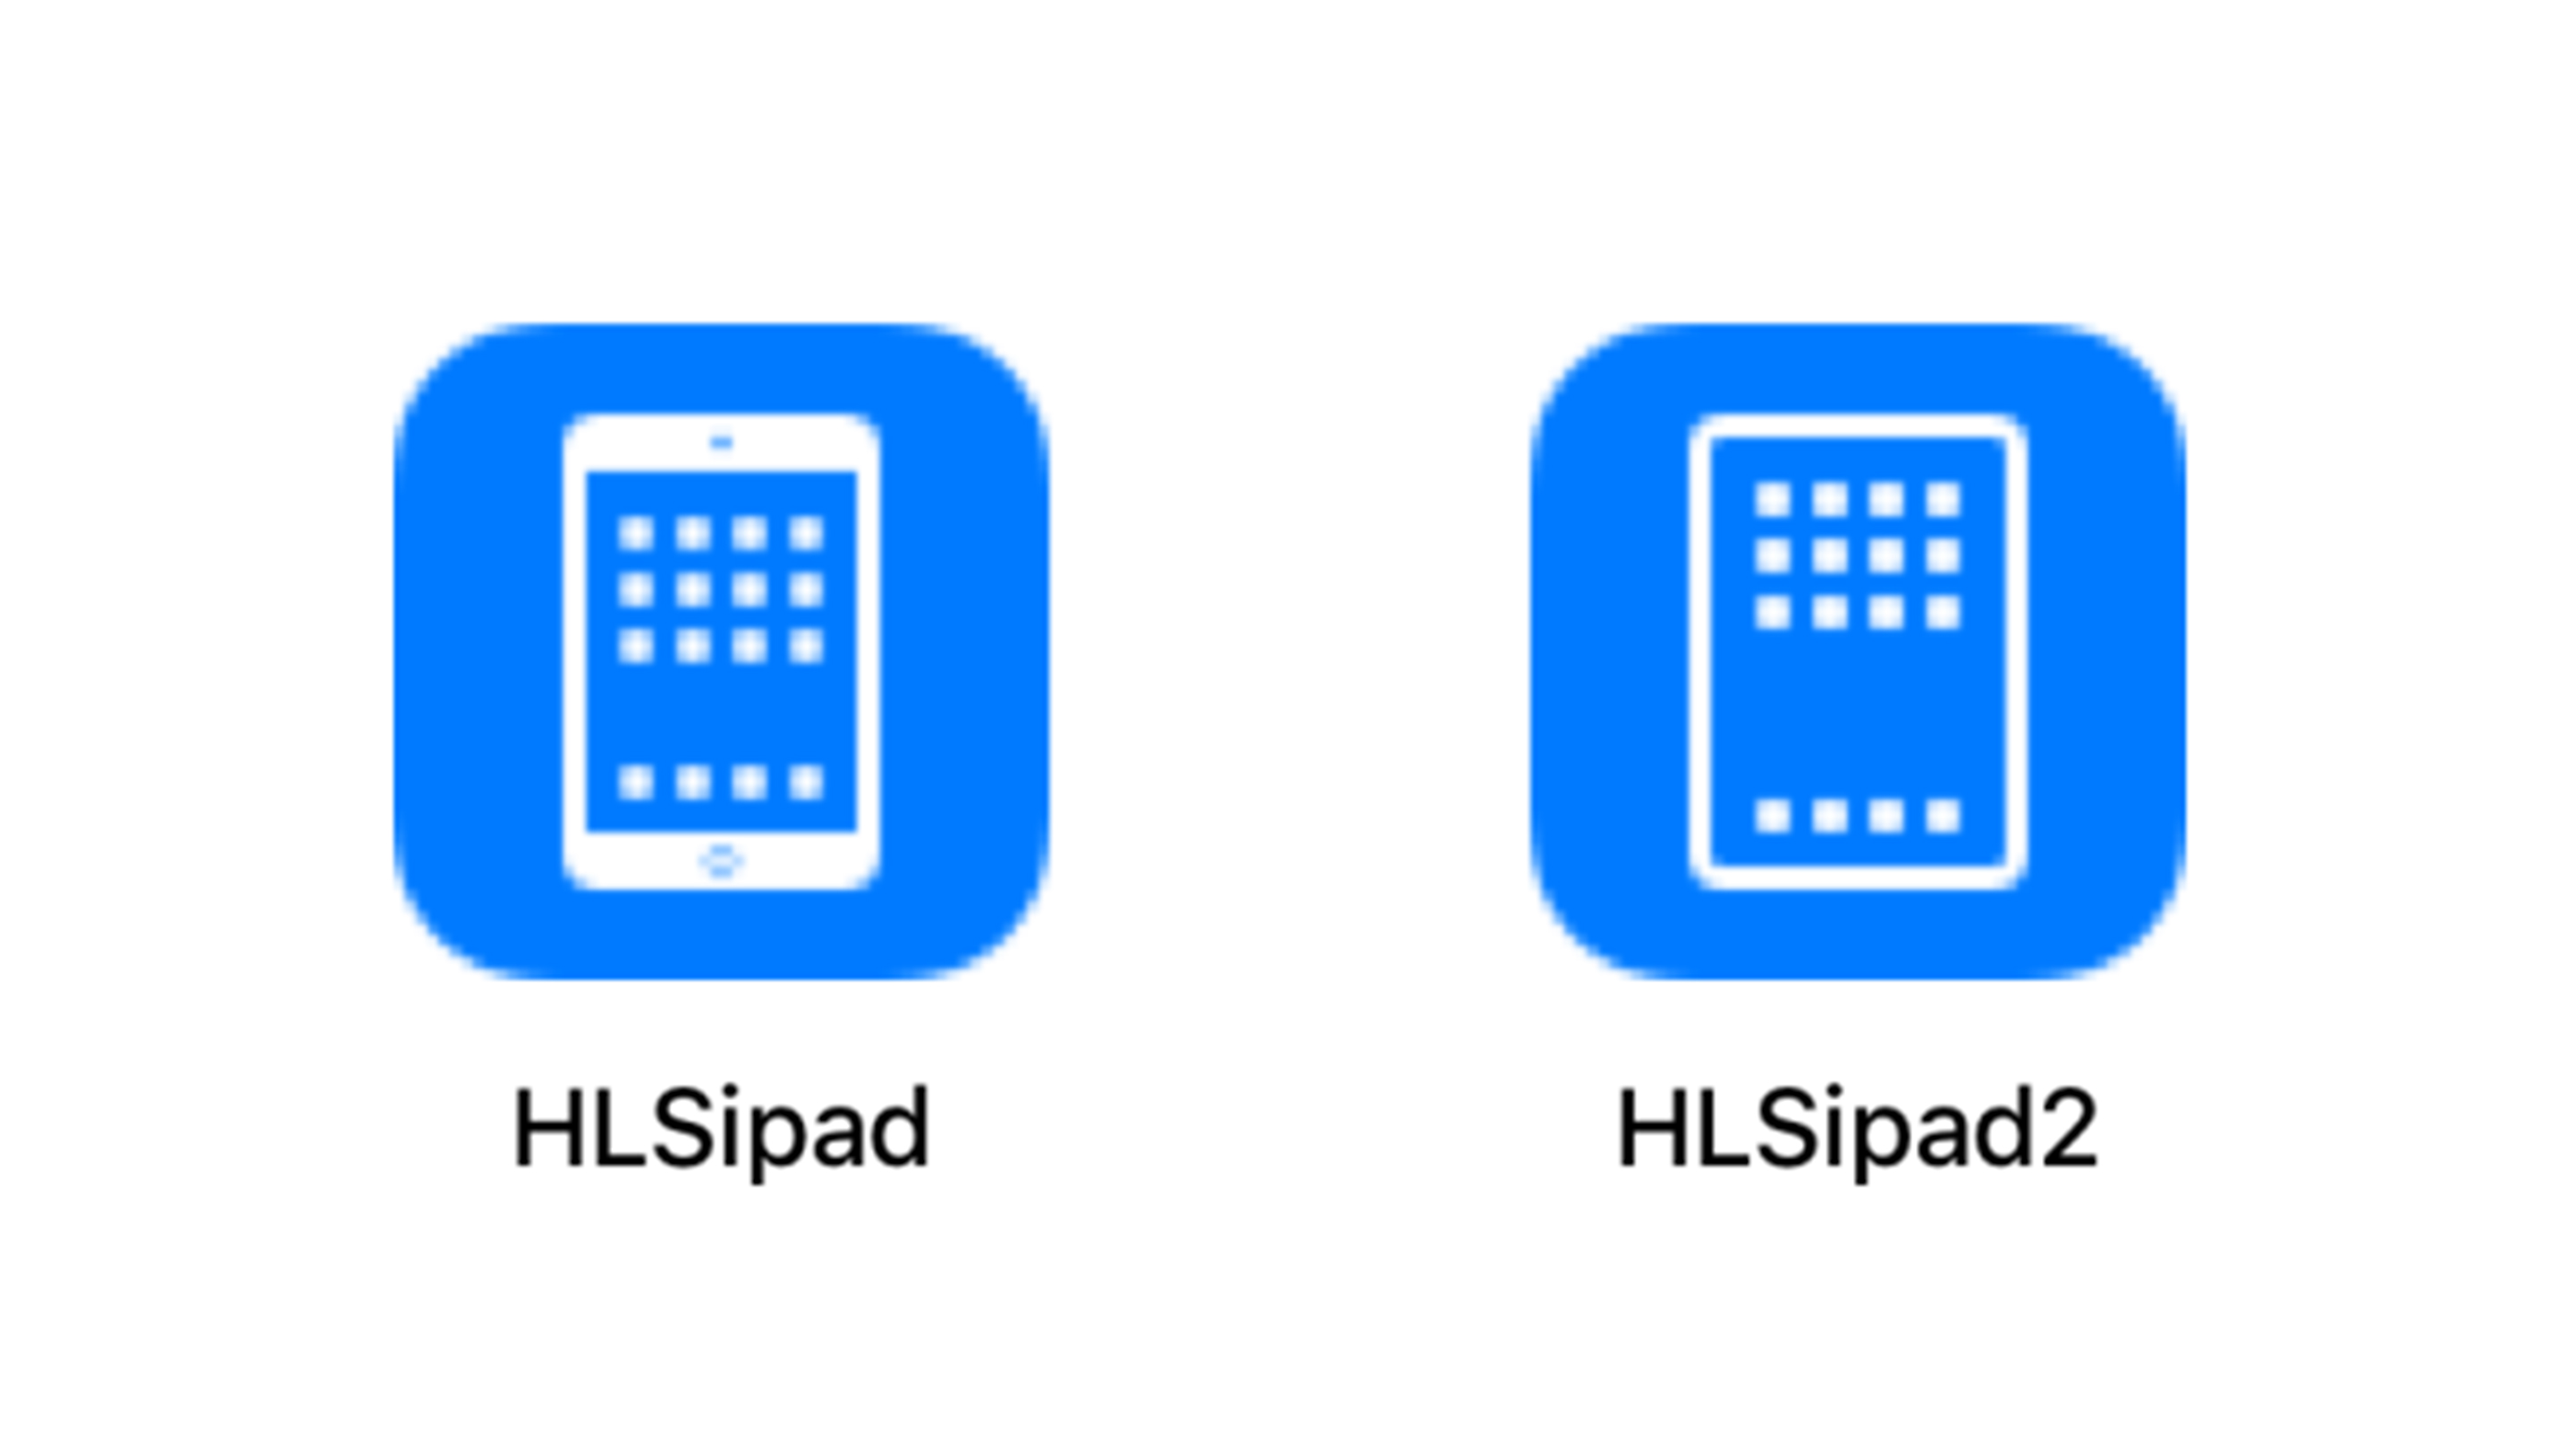 Assets for the new iPad